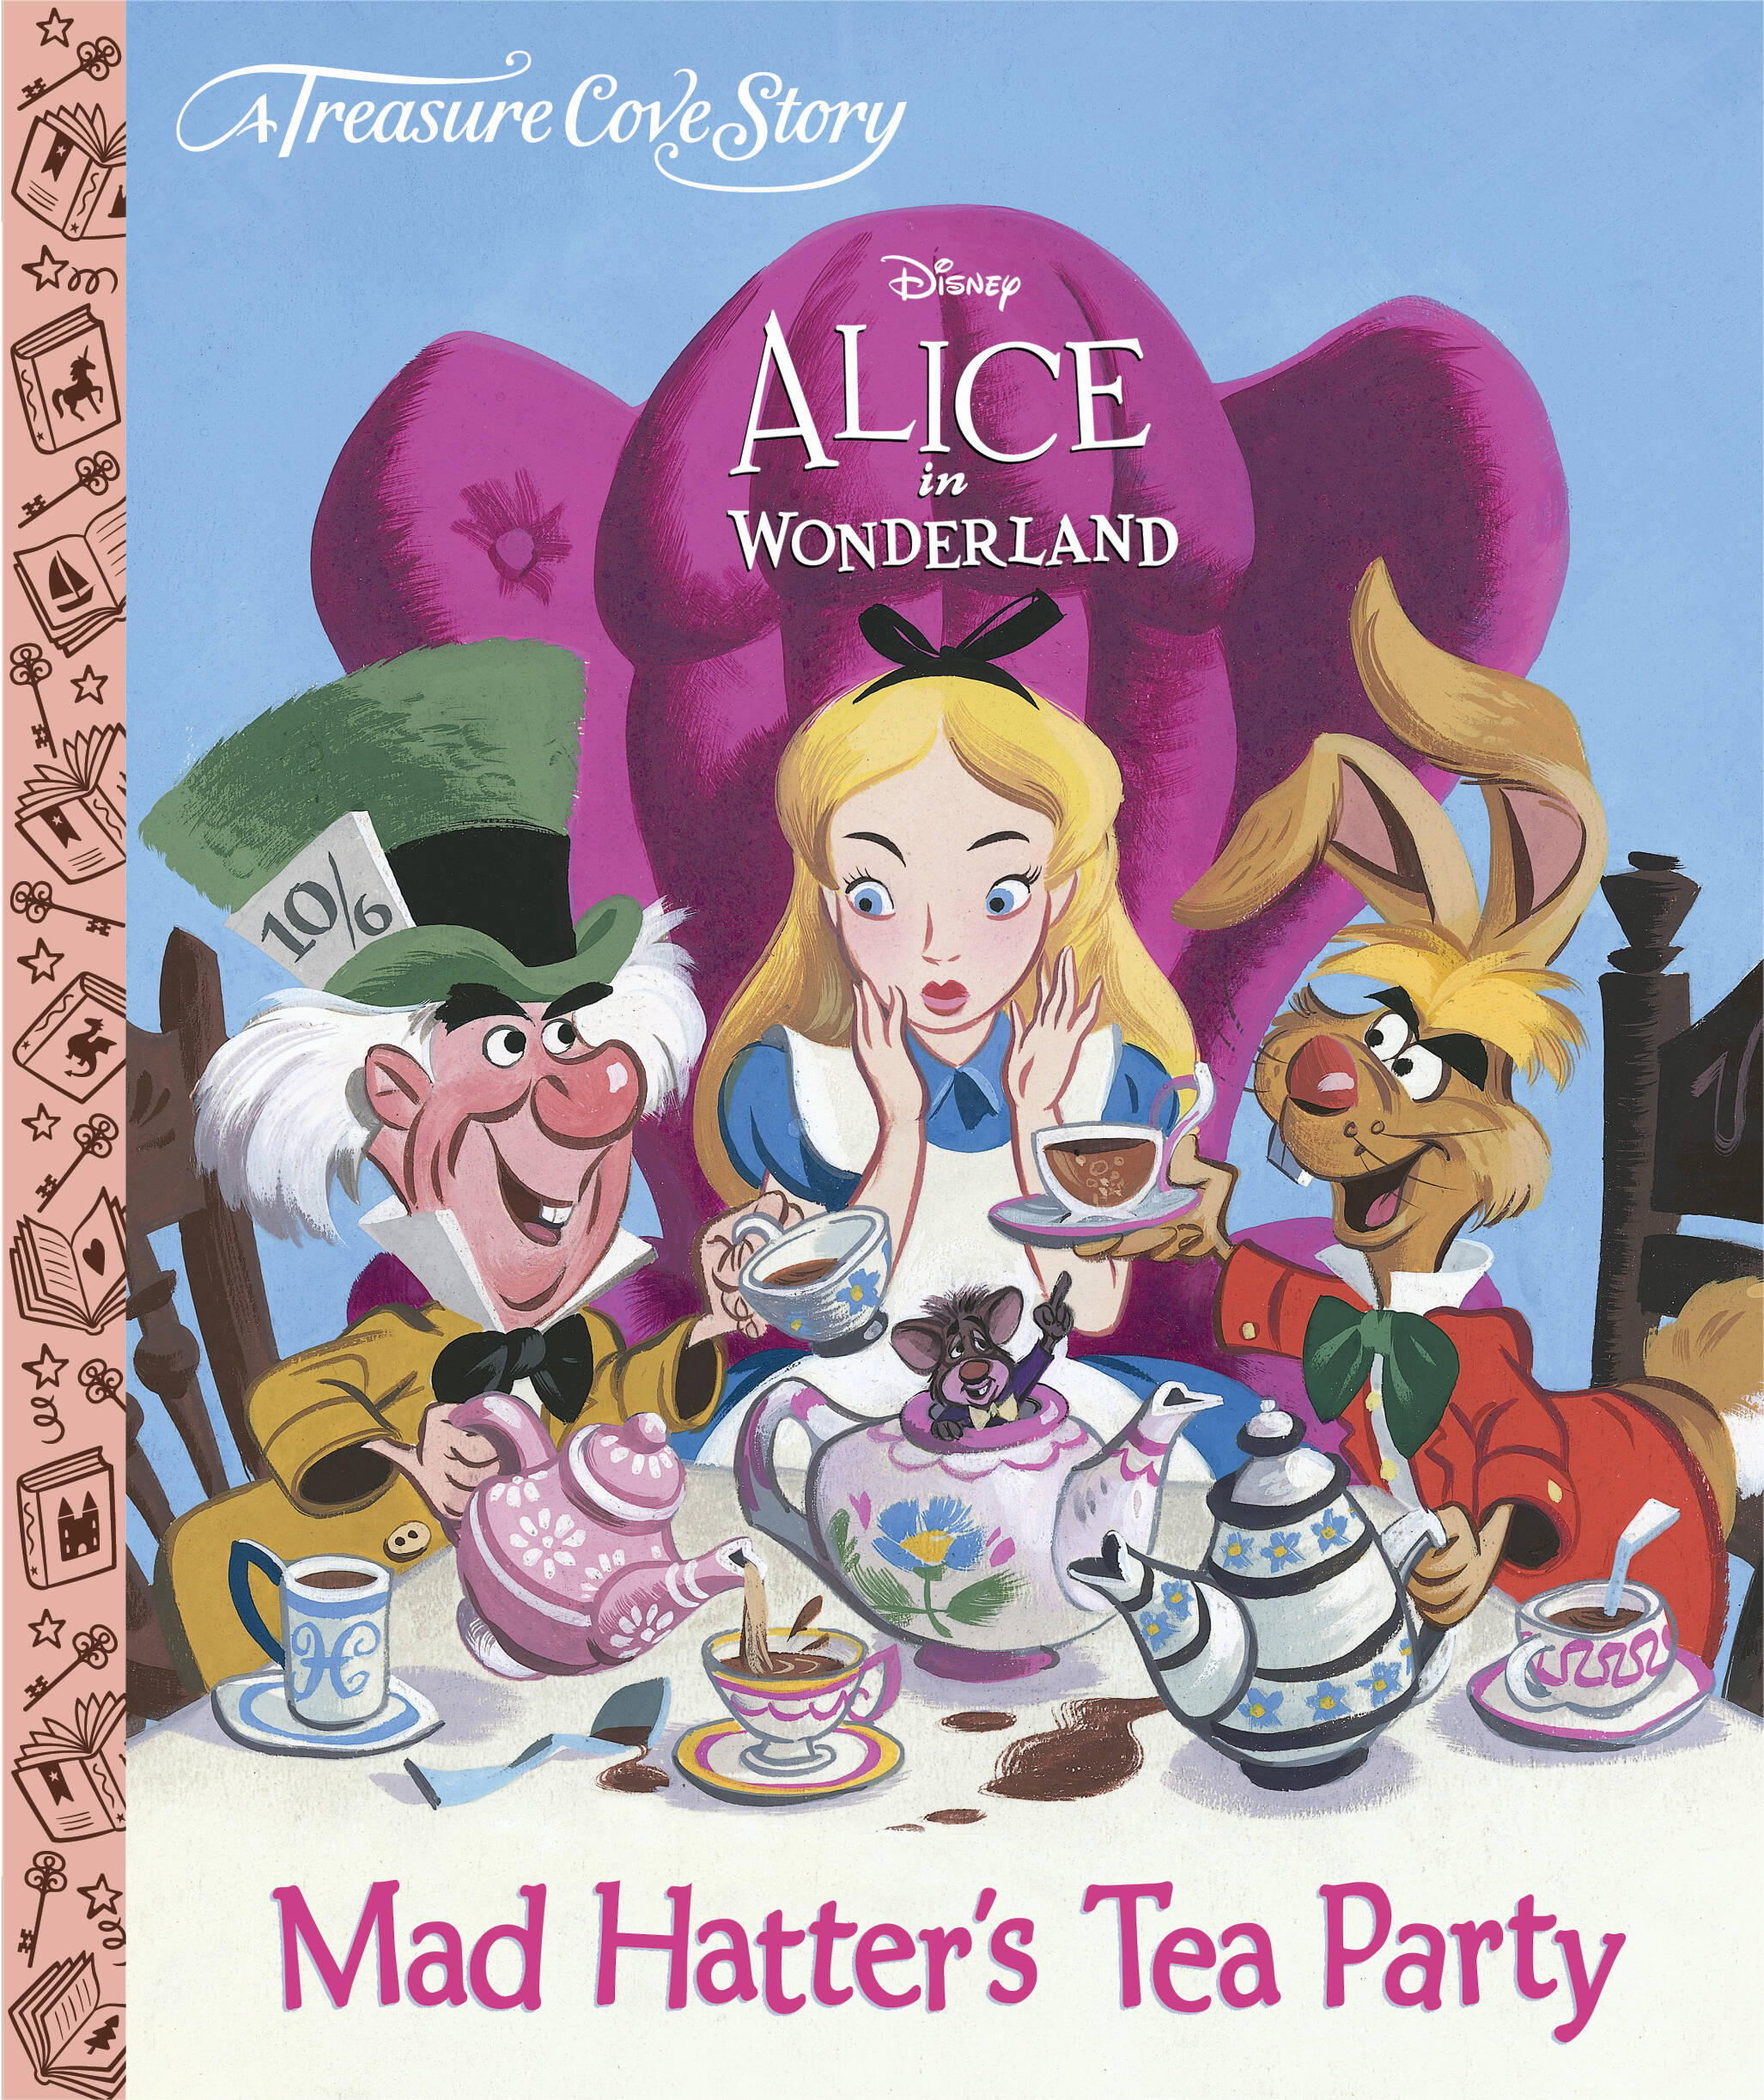 Disney Alice In Wonderland - Treasure Cove Stories